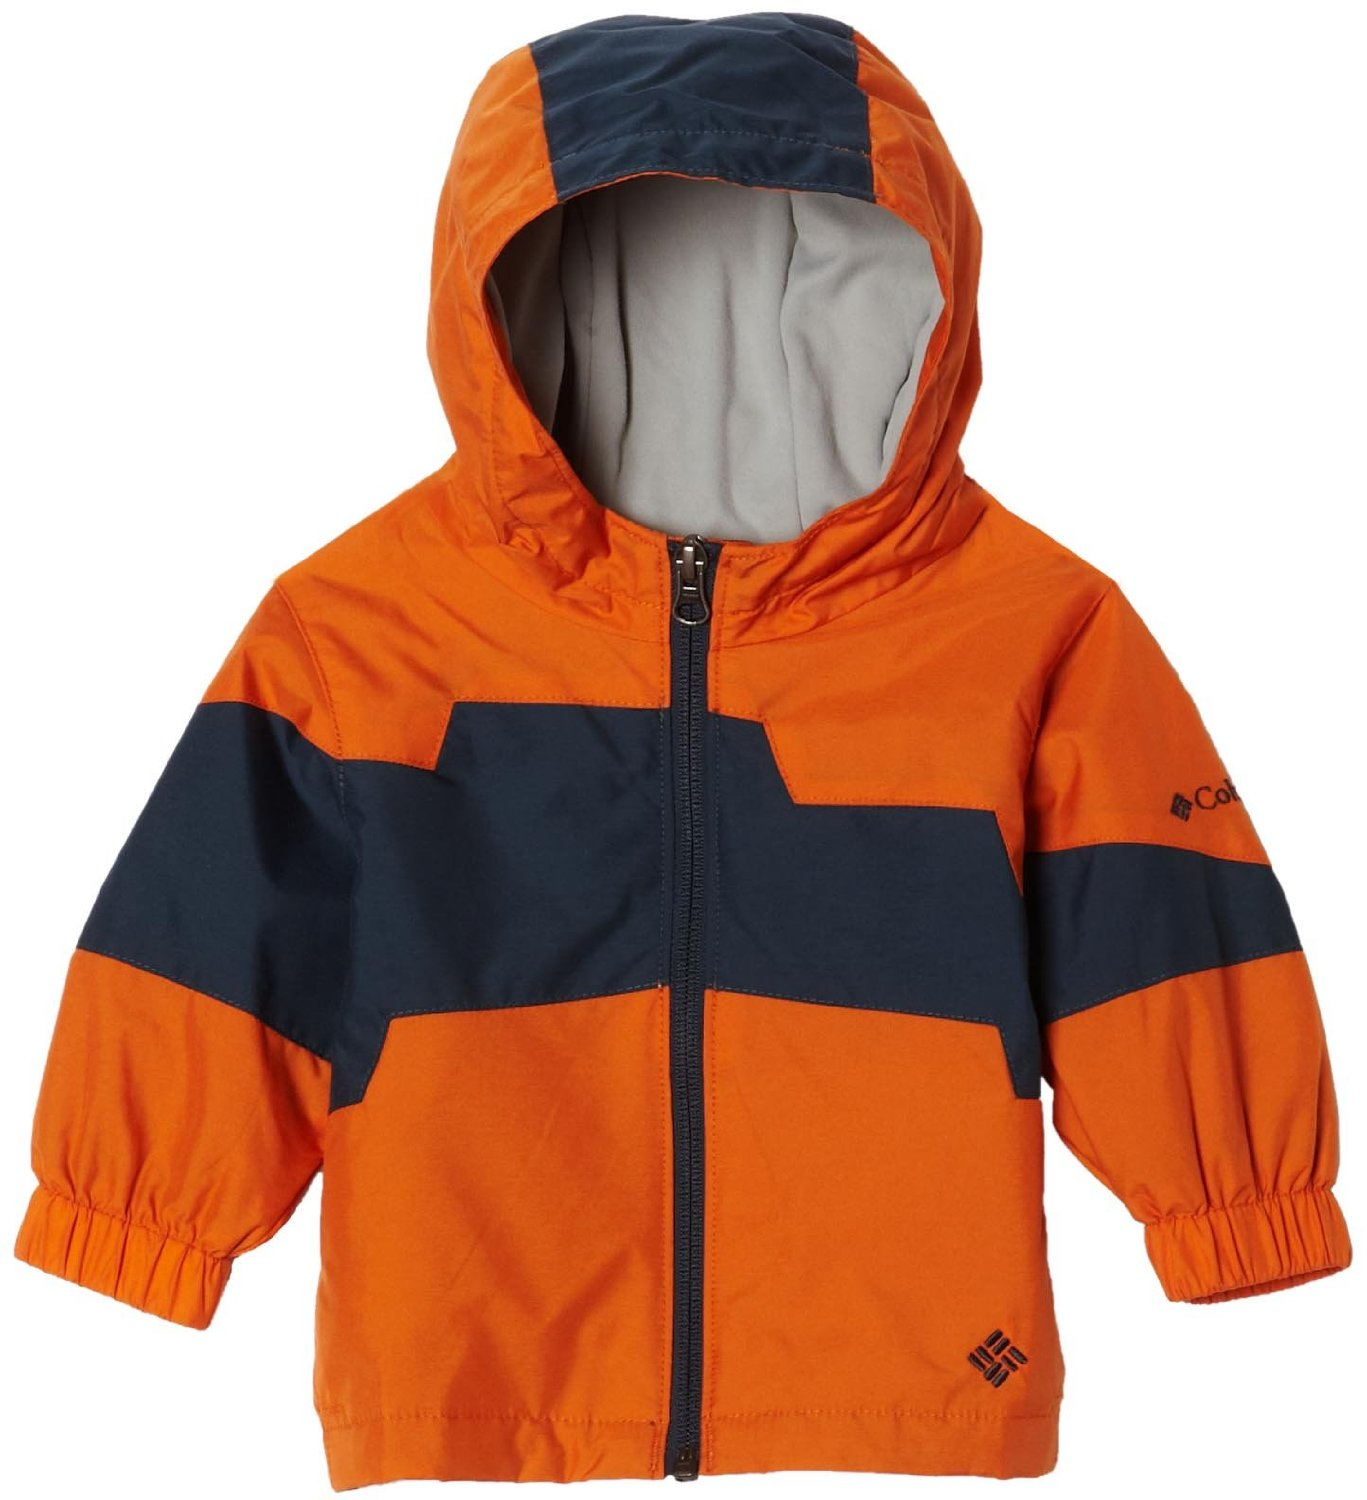 Kids Winter Coats Store